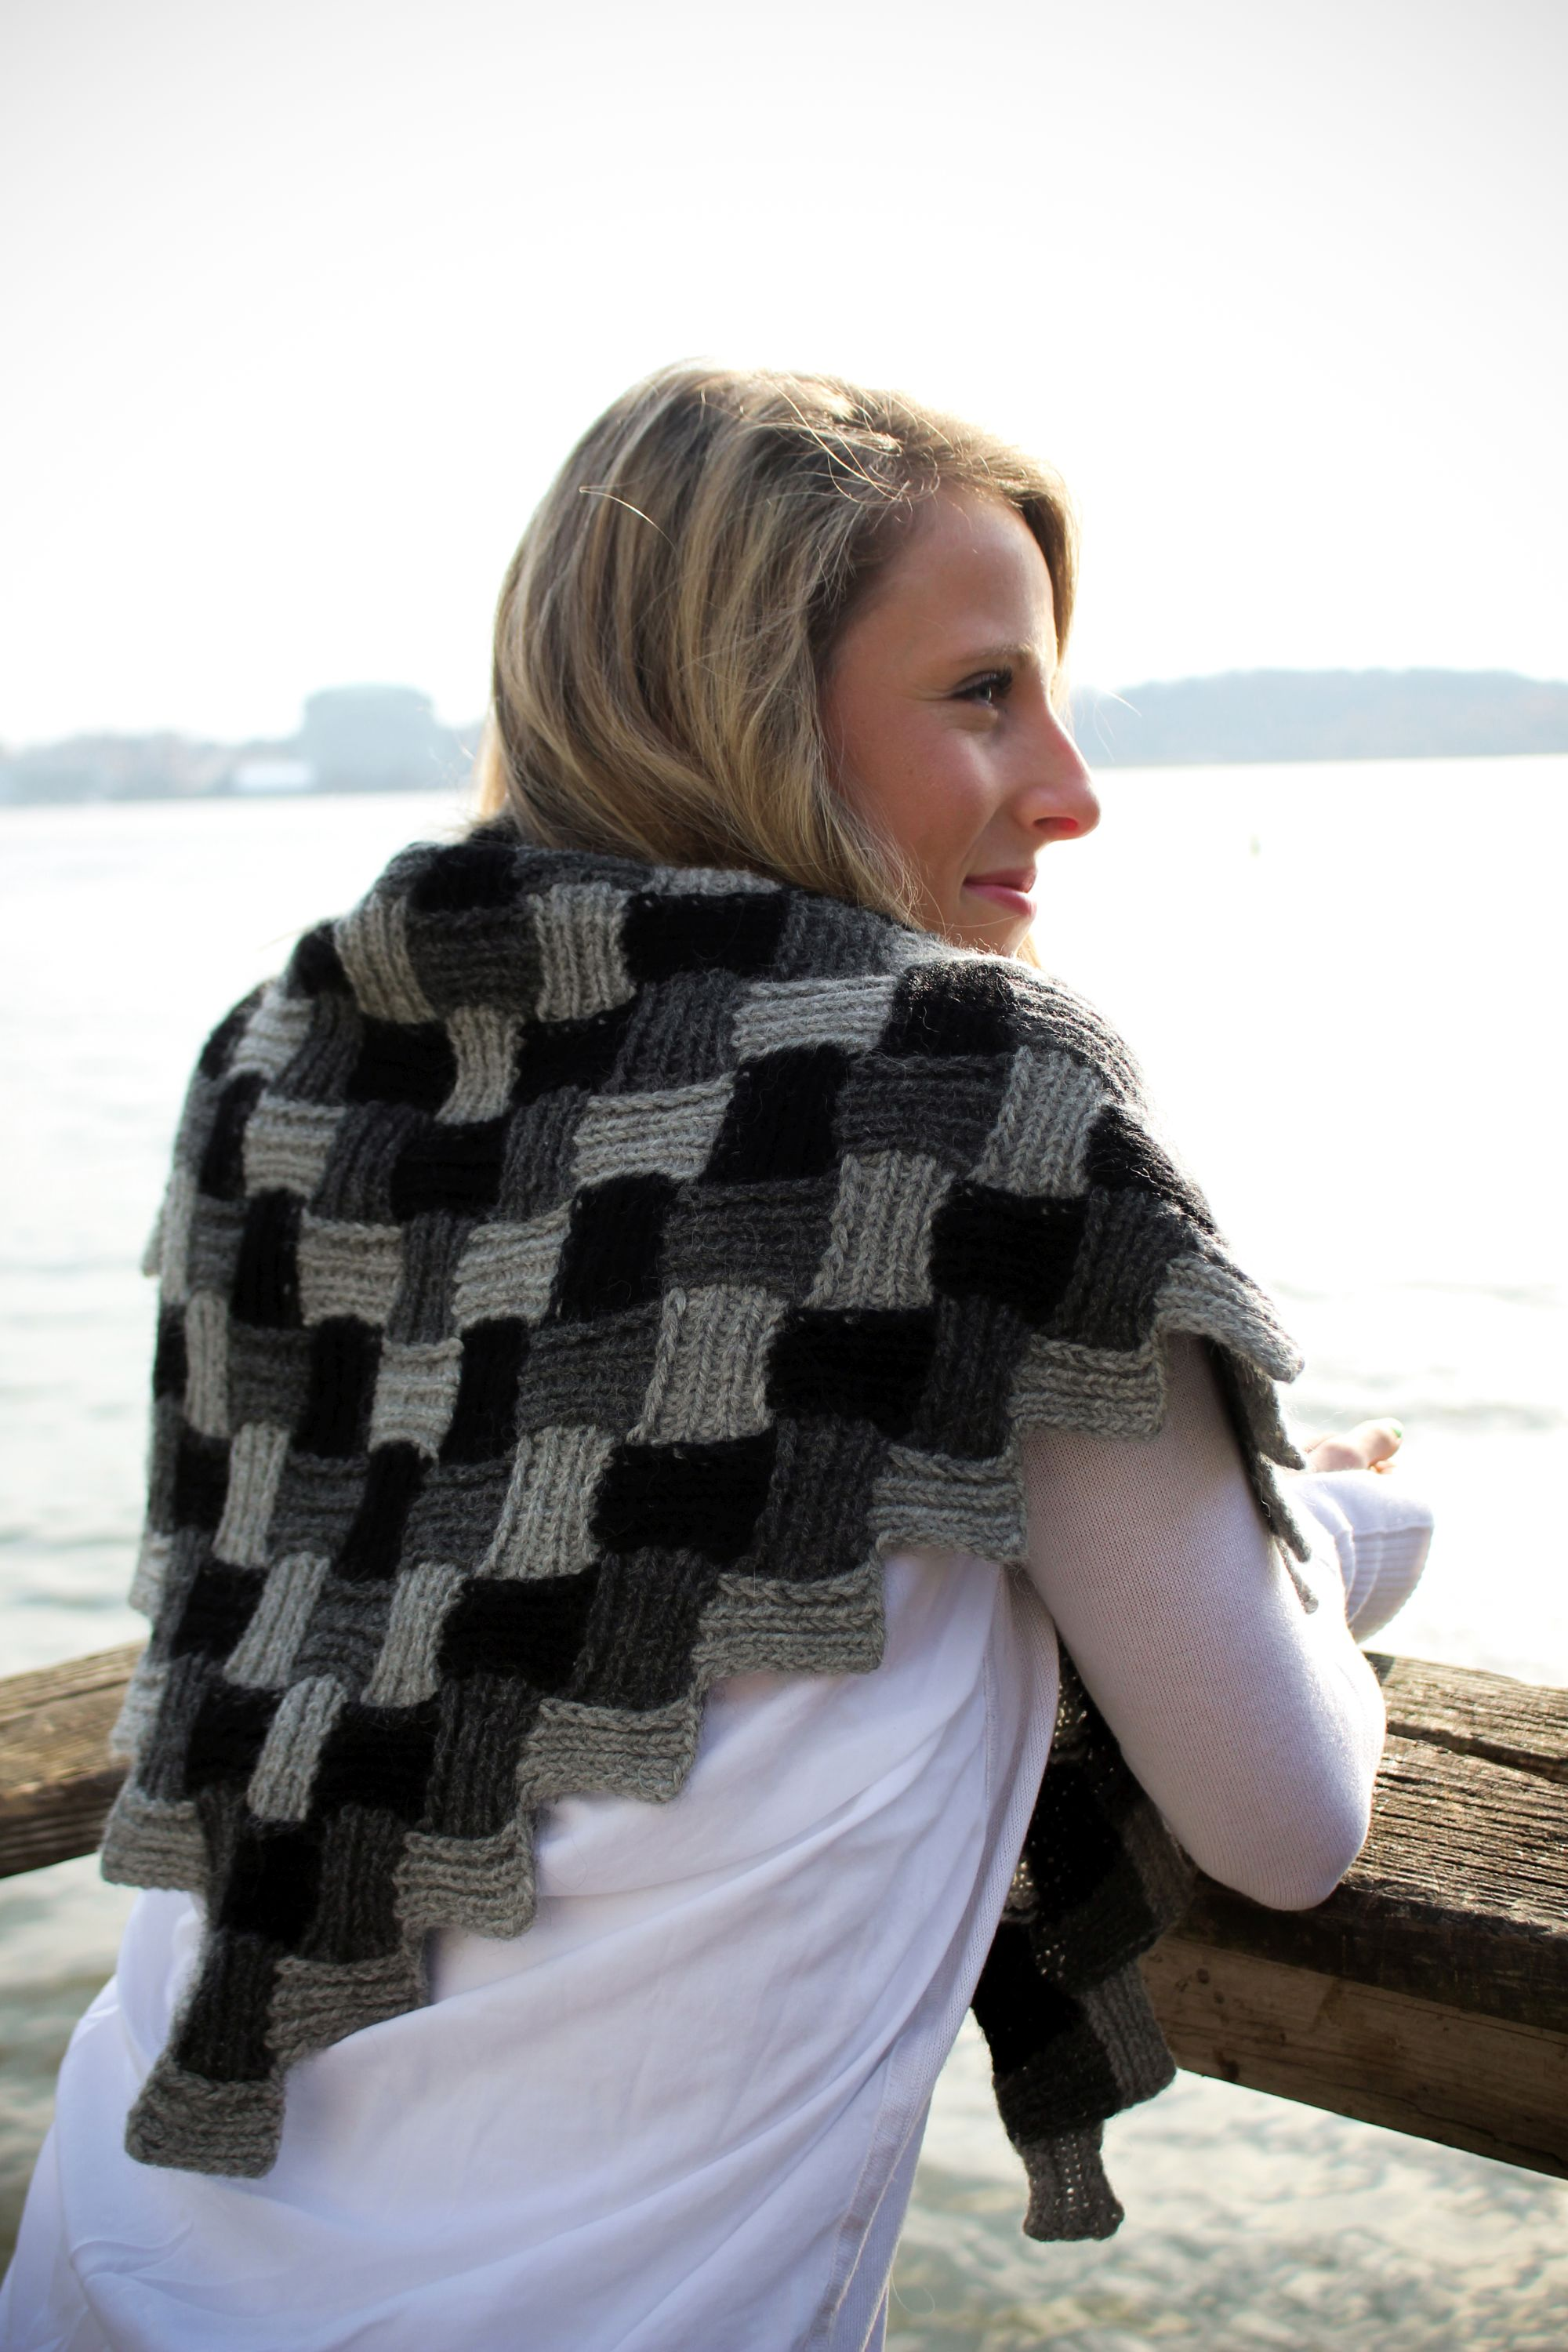 Mitered Entrelac Shawl  with Laura Barker